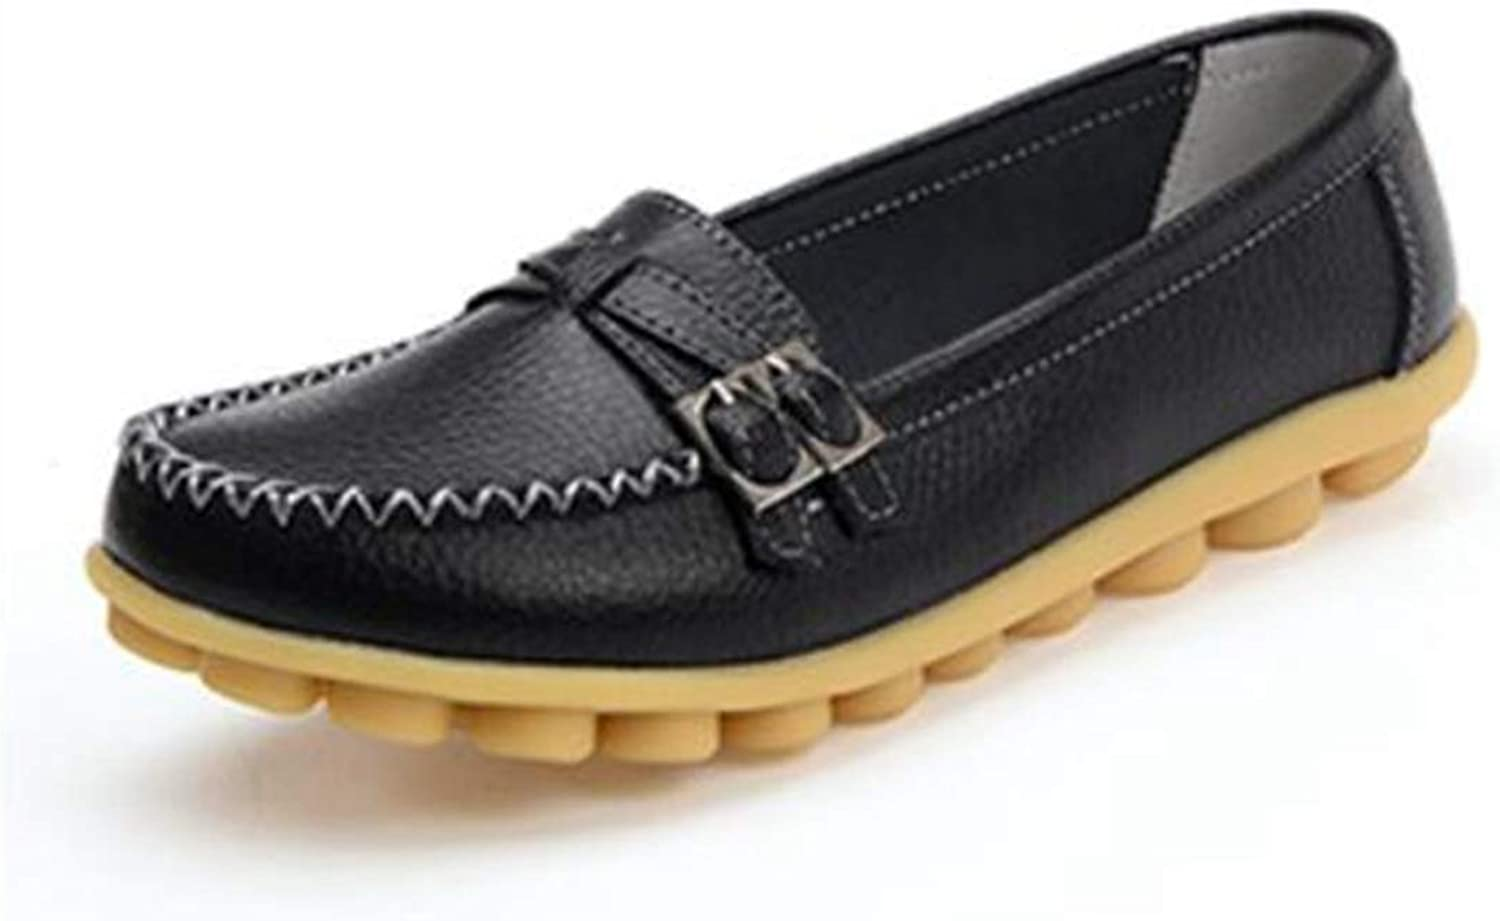 Women Flats, Summer Casual Slip On Buckle Walking Loafers shoes